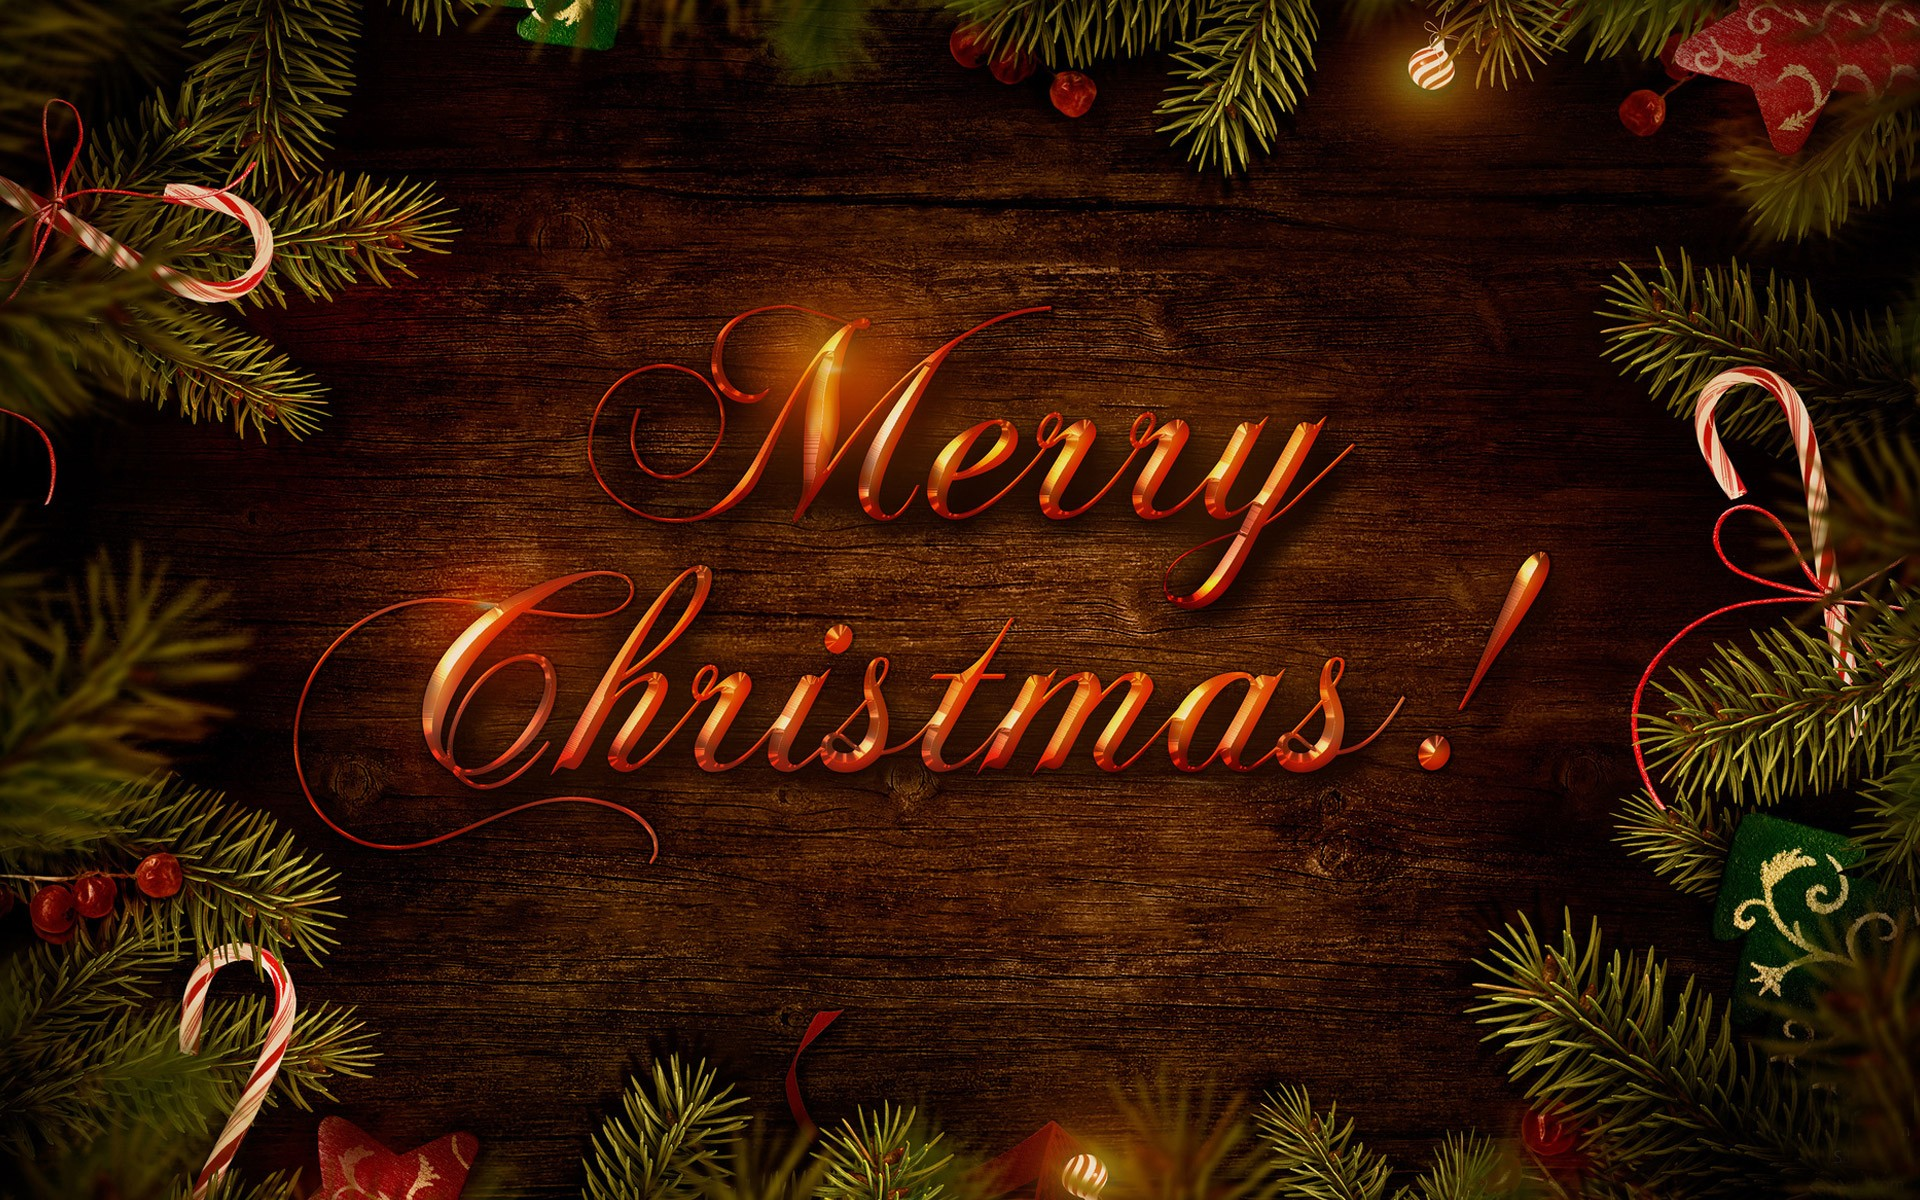 Christmas HD wallpaper for download